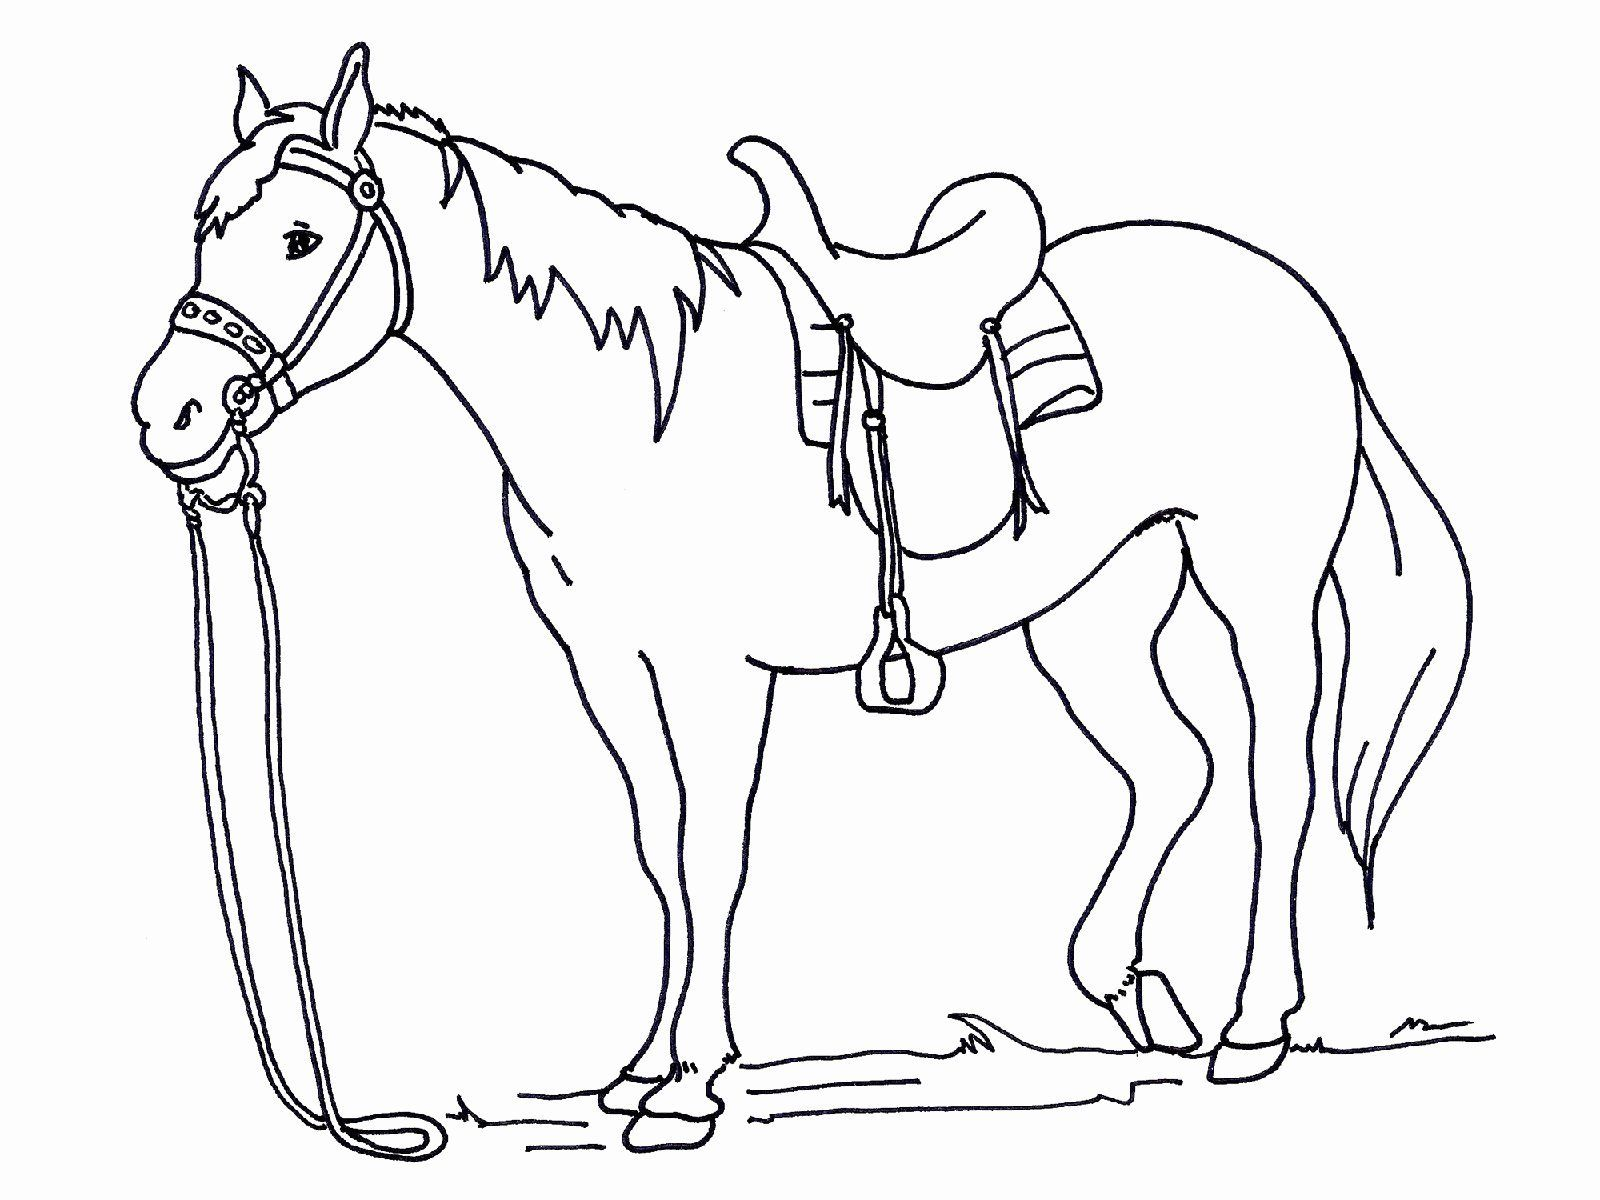 Coloring Pages Of Horses Unique Free And Printable Horse Color Martin Chandra Coloring Pages In 2020 Horse Coloring Horse Coloring Pages Animal Coloring Pages